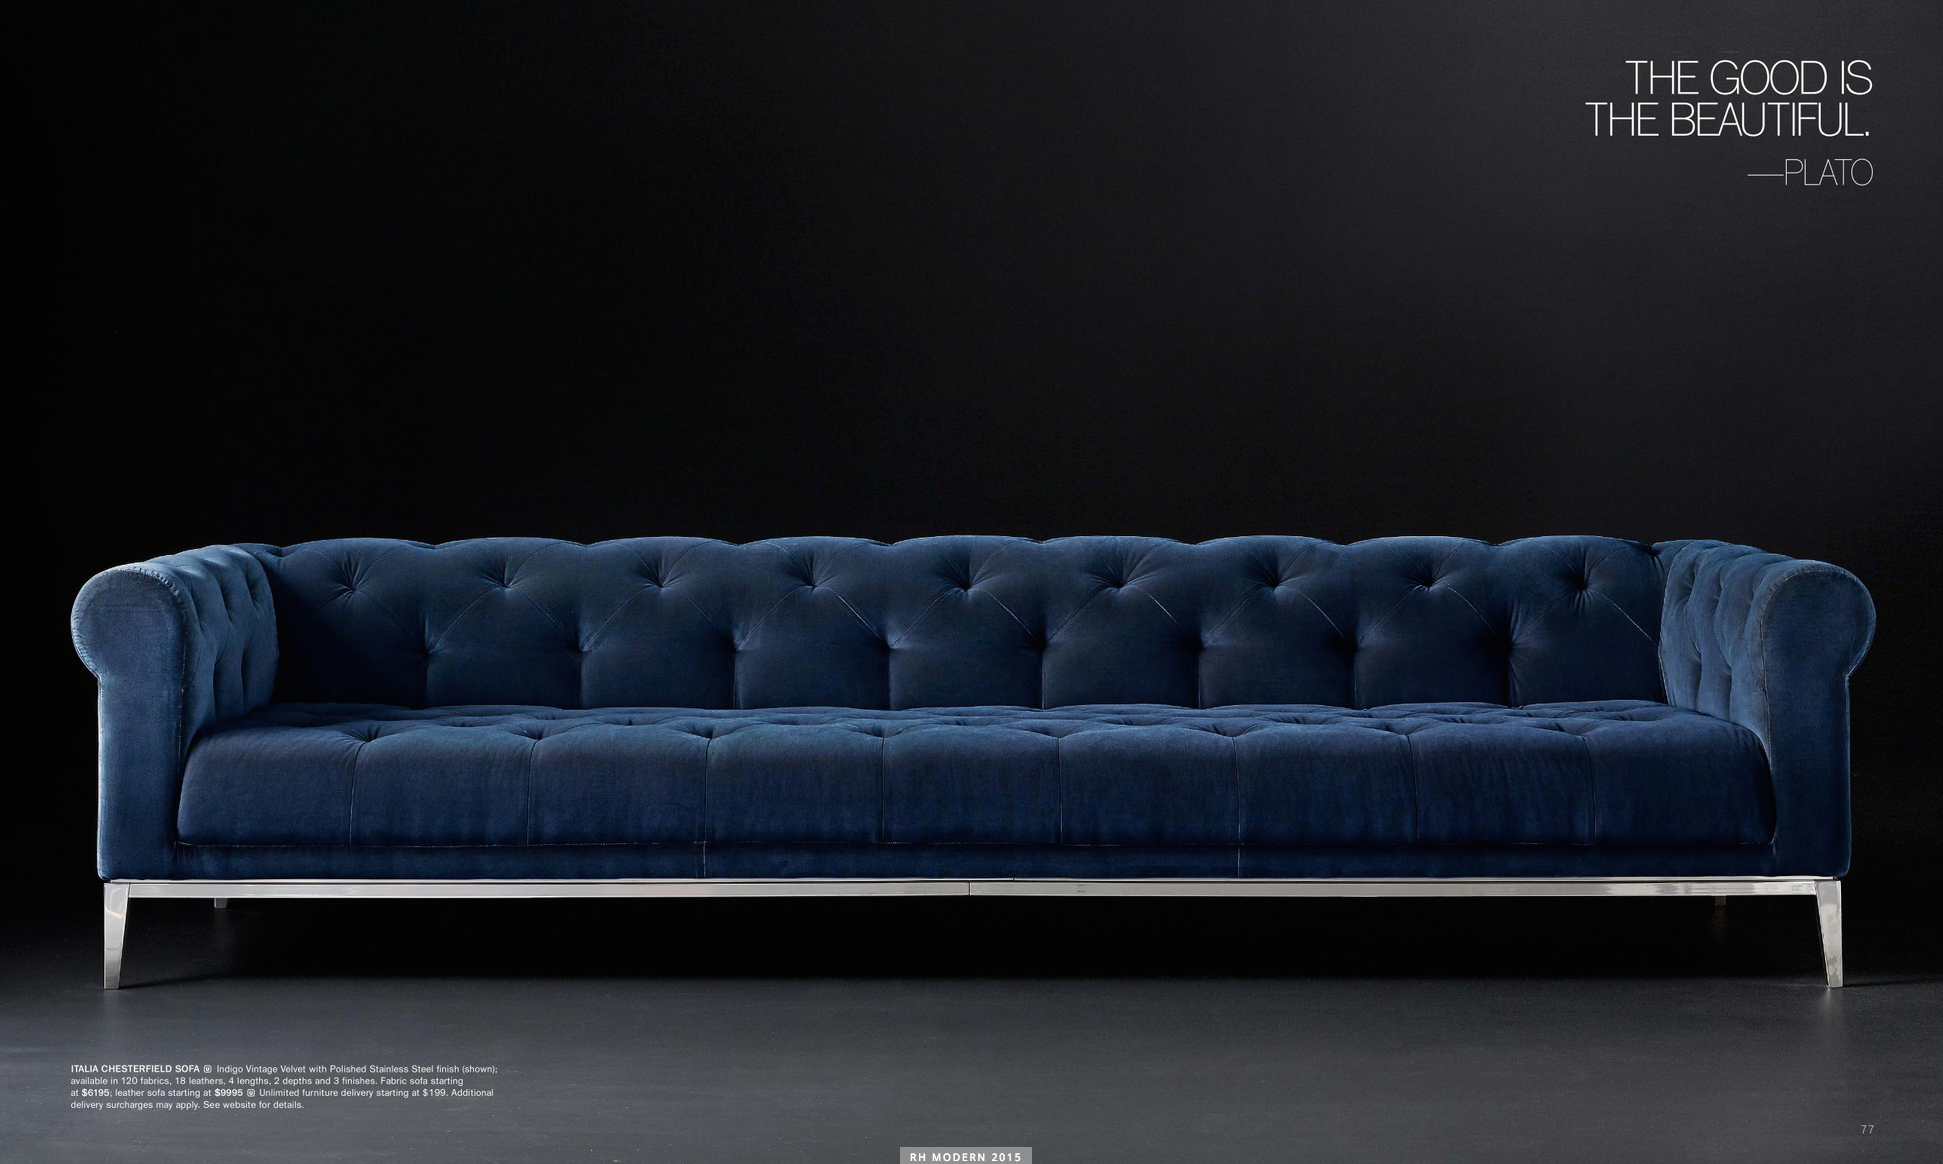 Italia Chesterfield Sofa Leather Chair Living Room Blue Velvet Chairs Sofa